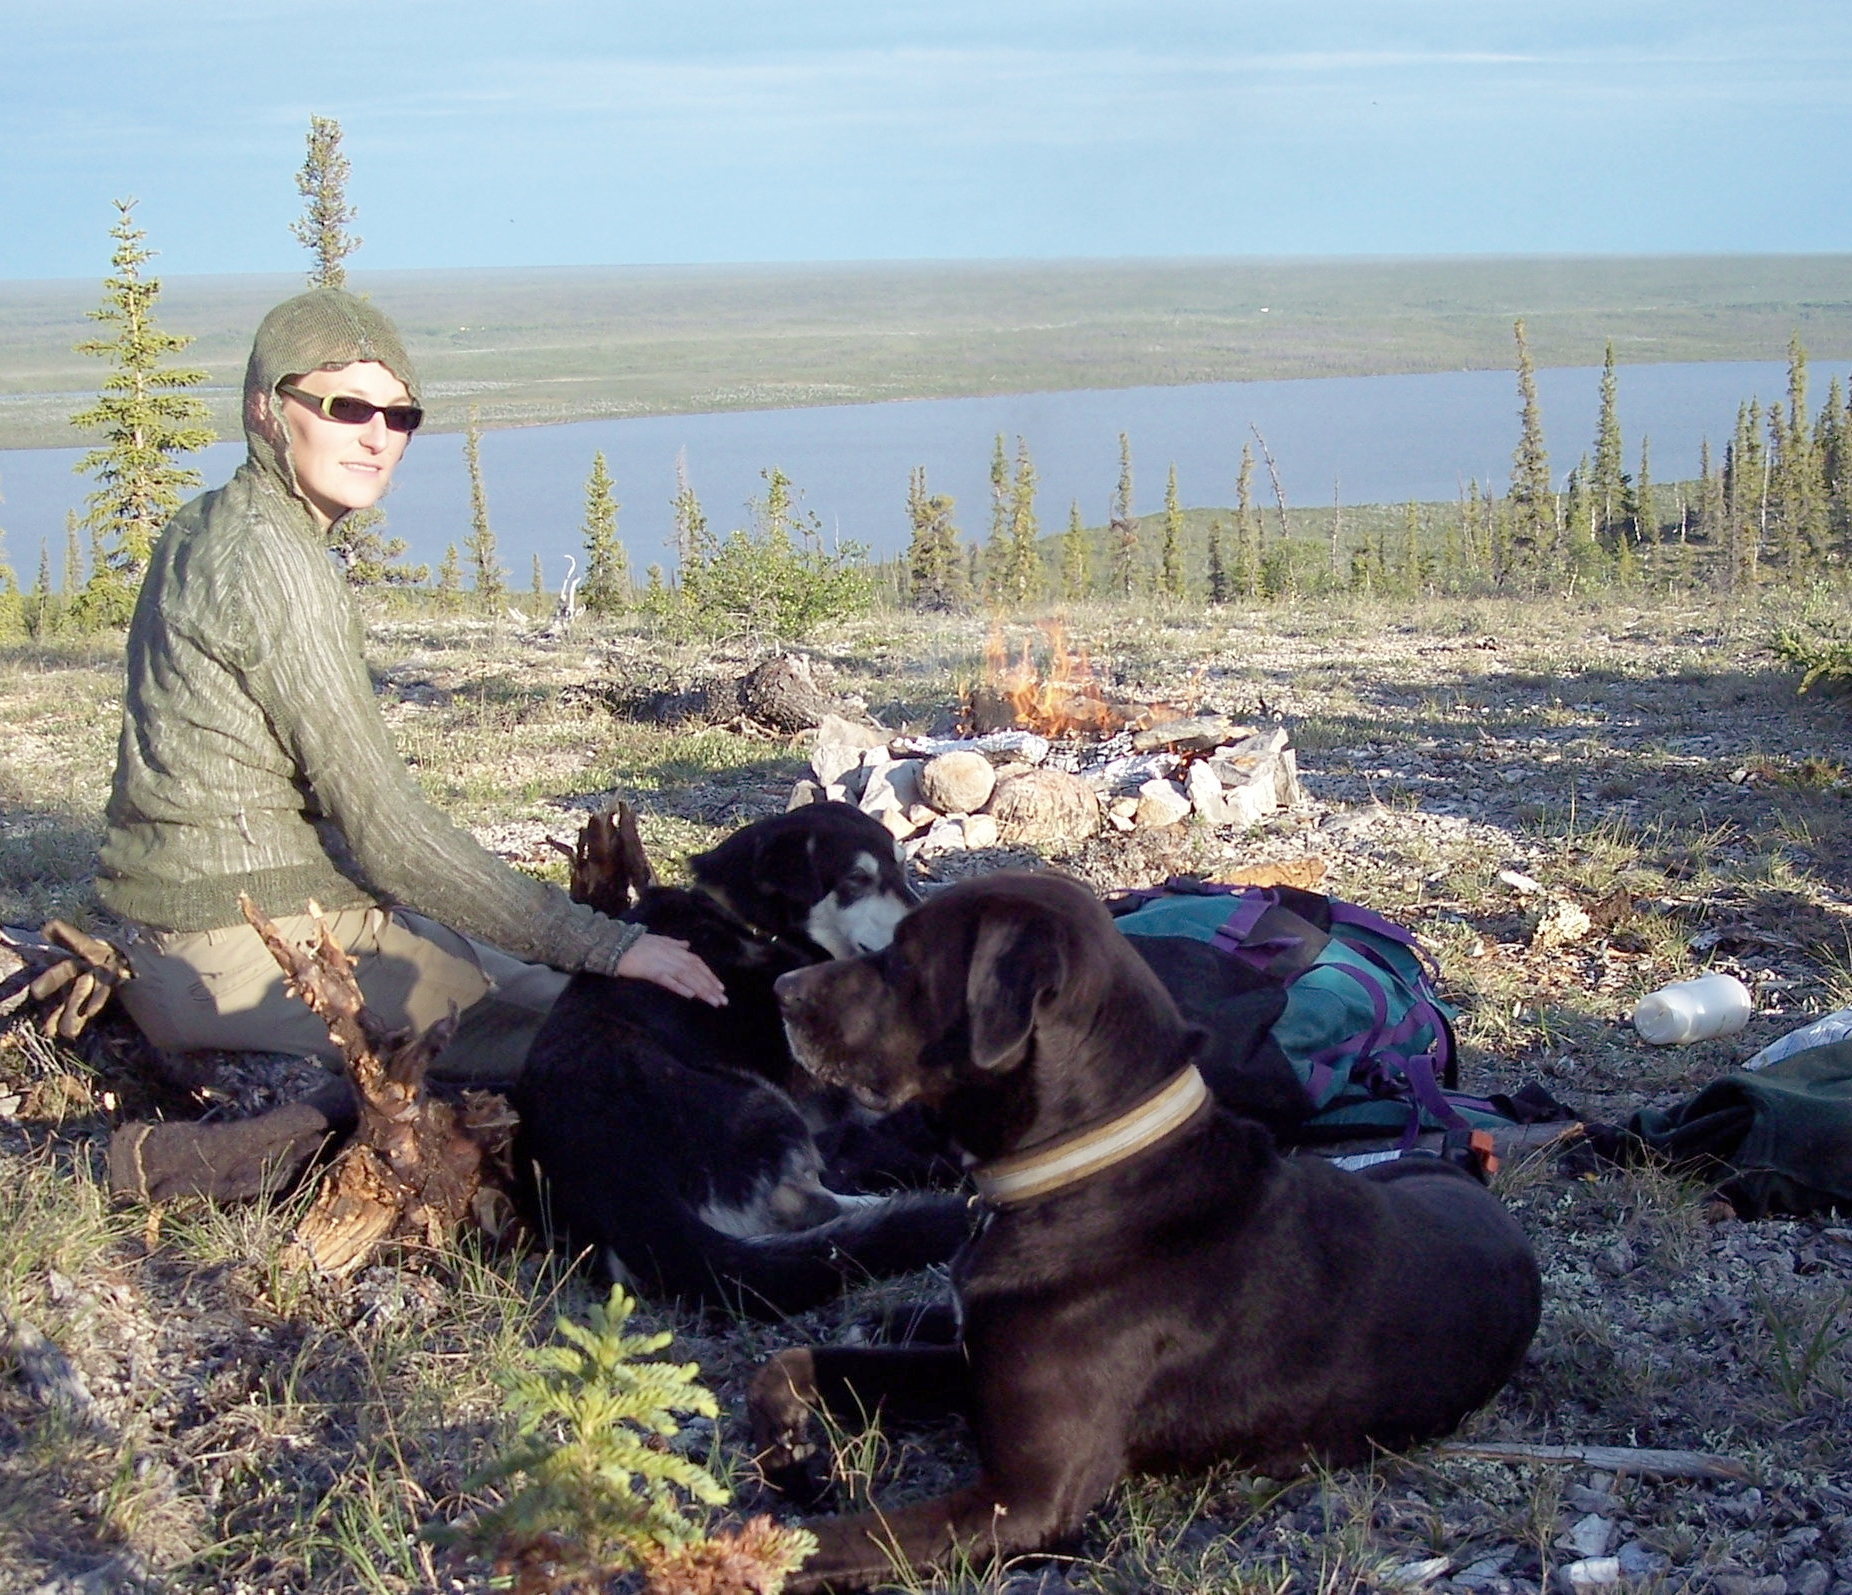 My first dog (front) after she had chased away a bear while we were camping in the Arctic. Those rose-coloured spectacles are feeling pretty rosy right now.